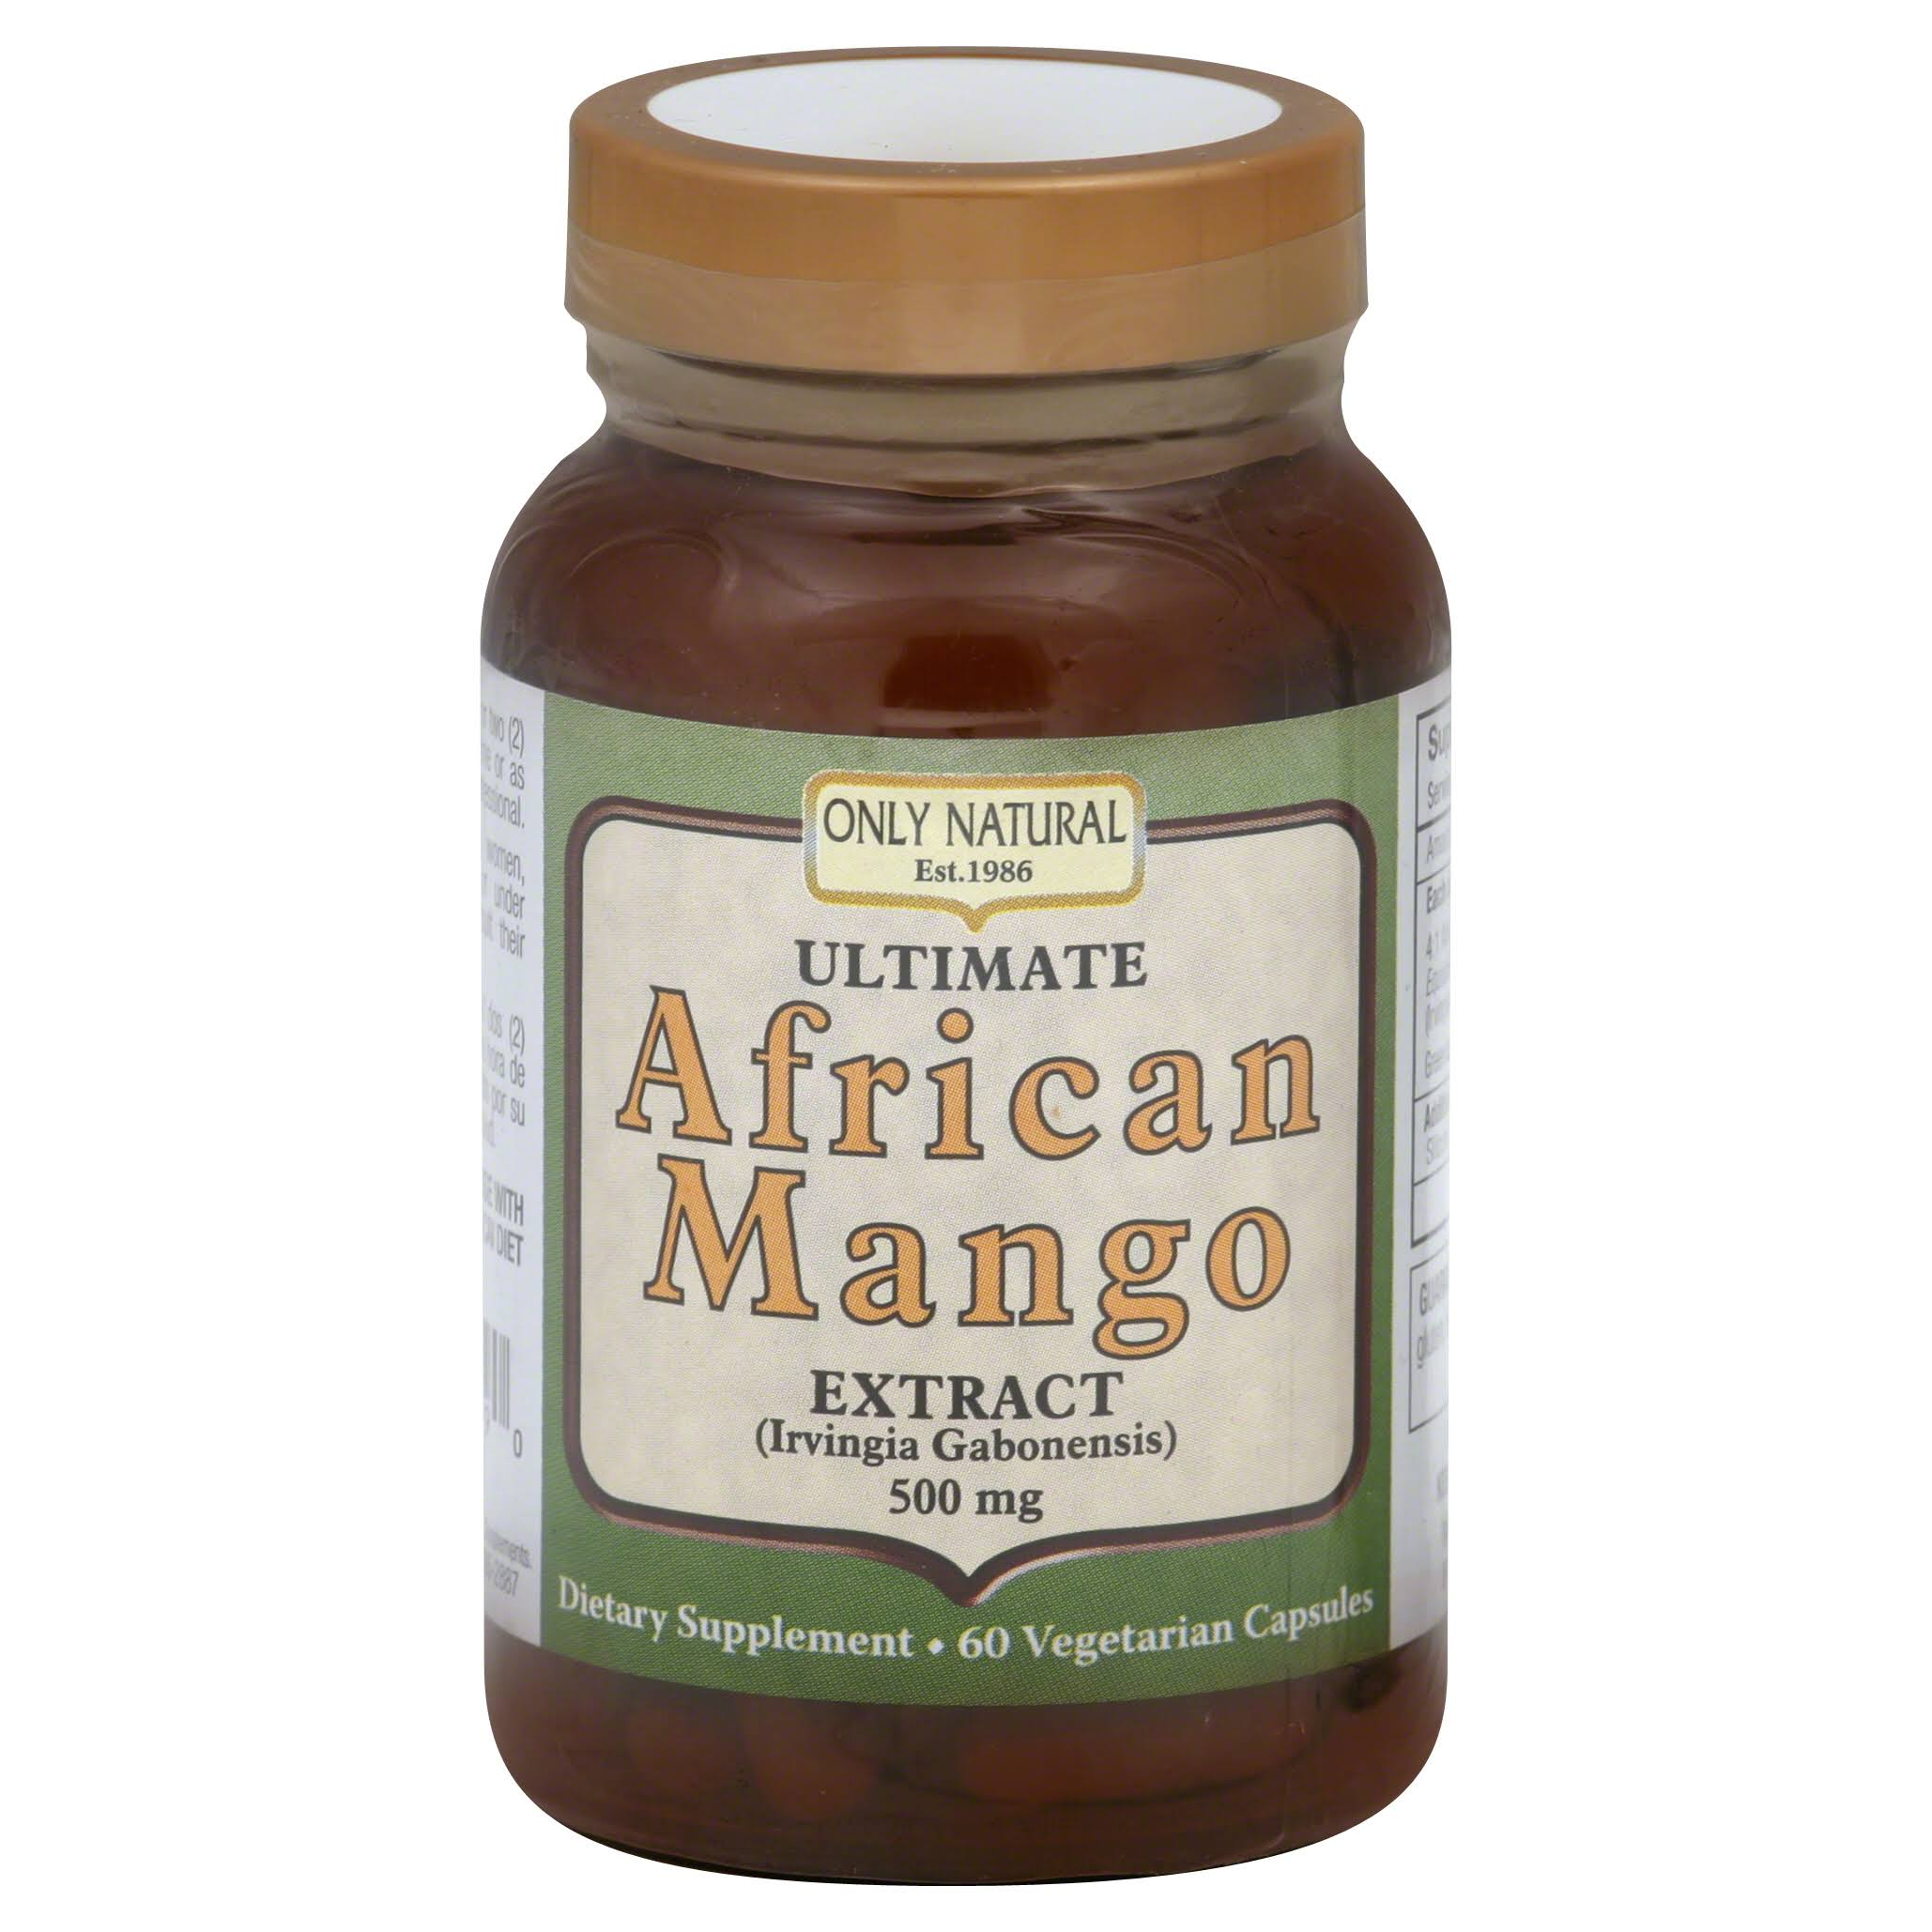 Only Natural African Mango Extract Ultimate - 500mg, 60ct